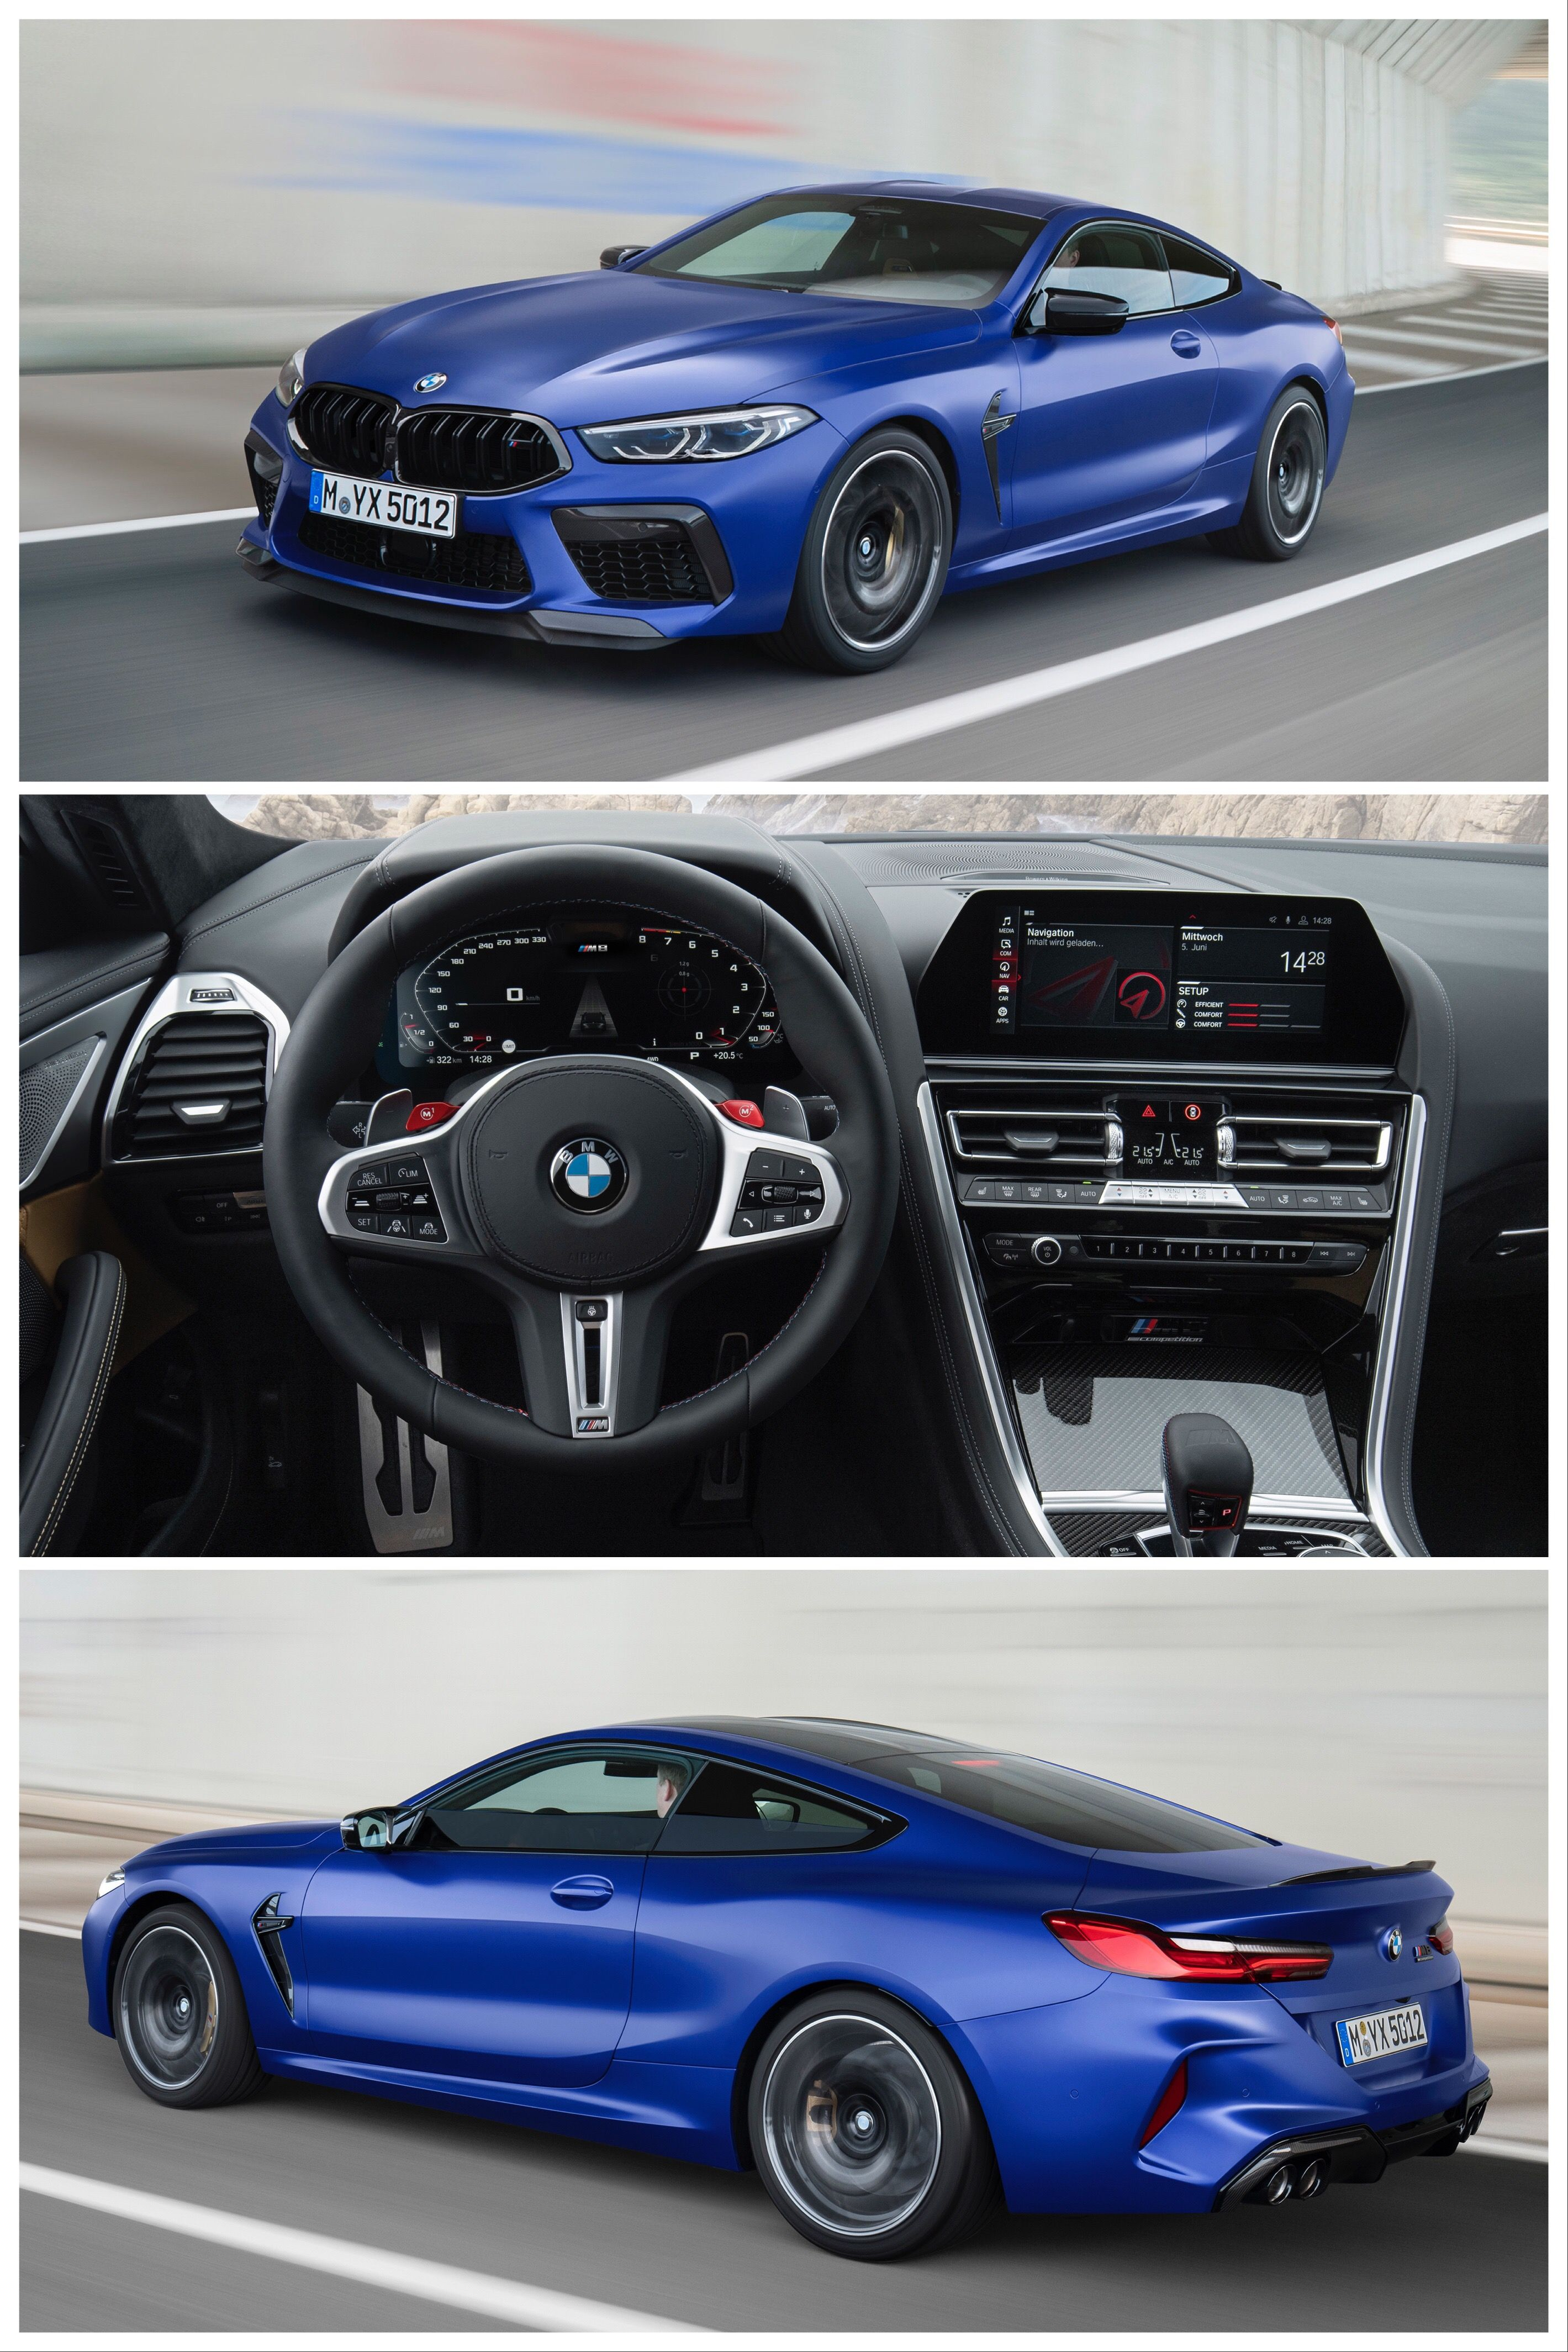 Bmw M8 Coupe And Convertible Offer Up To 617 Horsepower Bmw Bmw